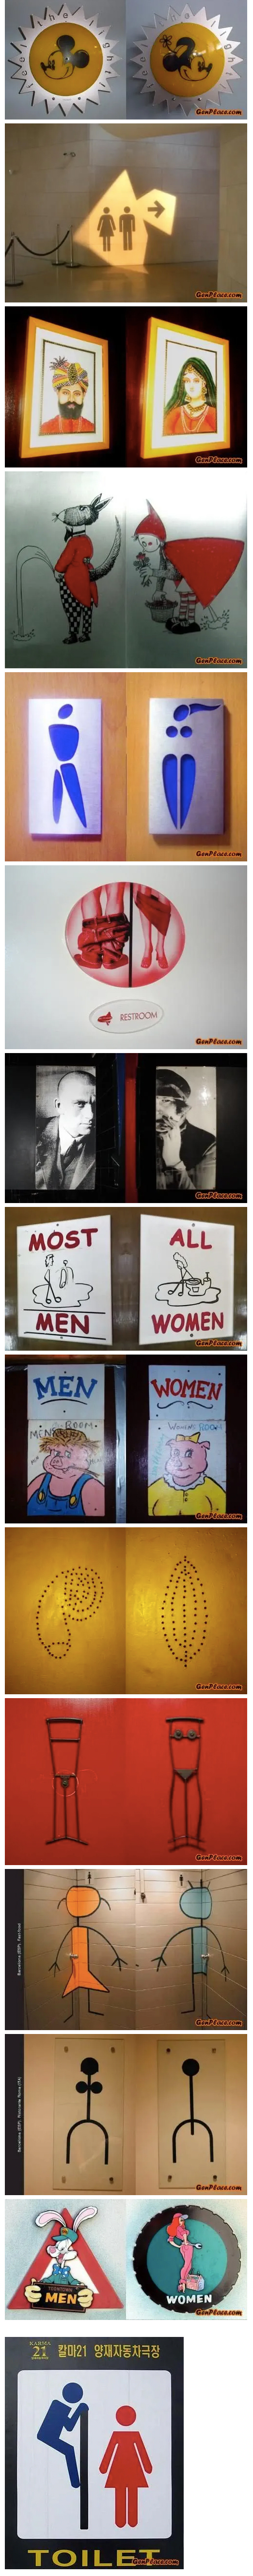 toilet_sign_02